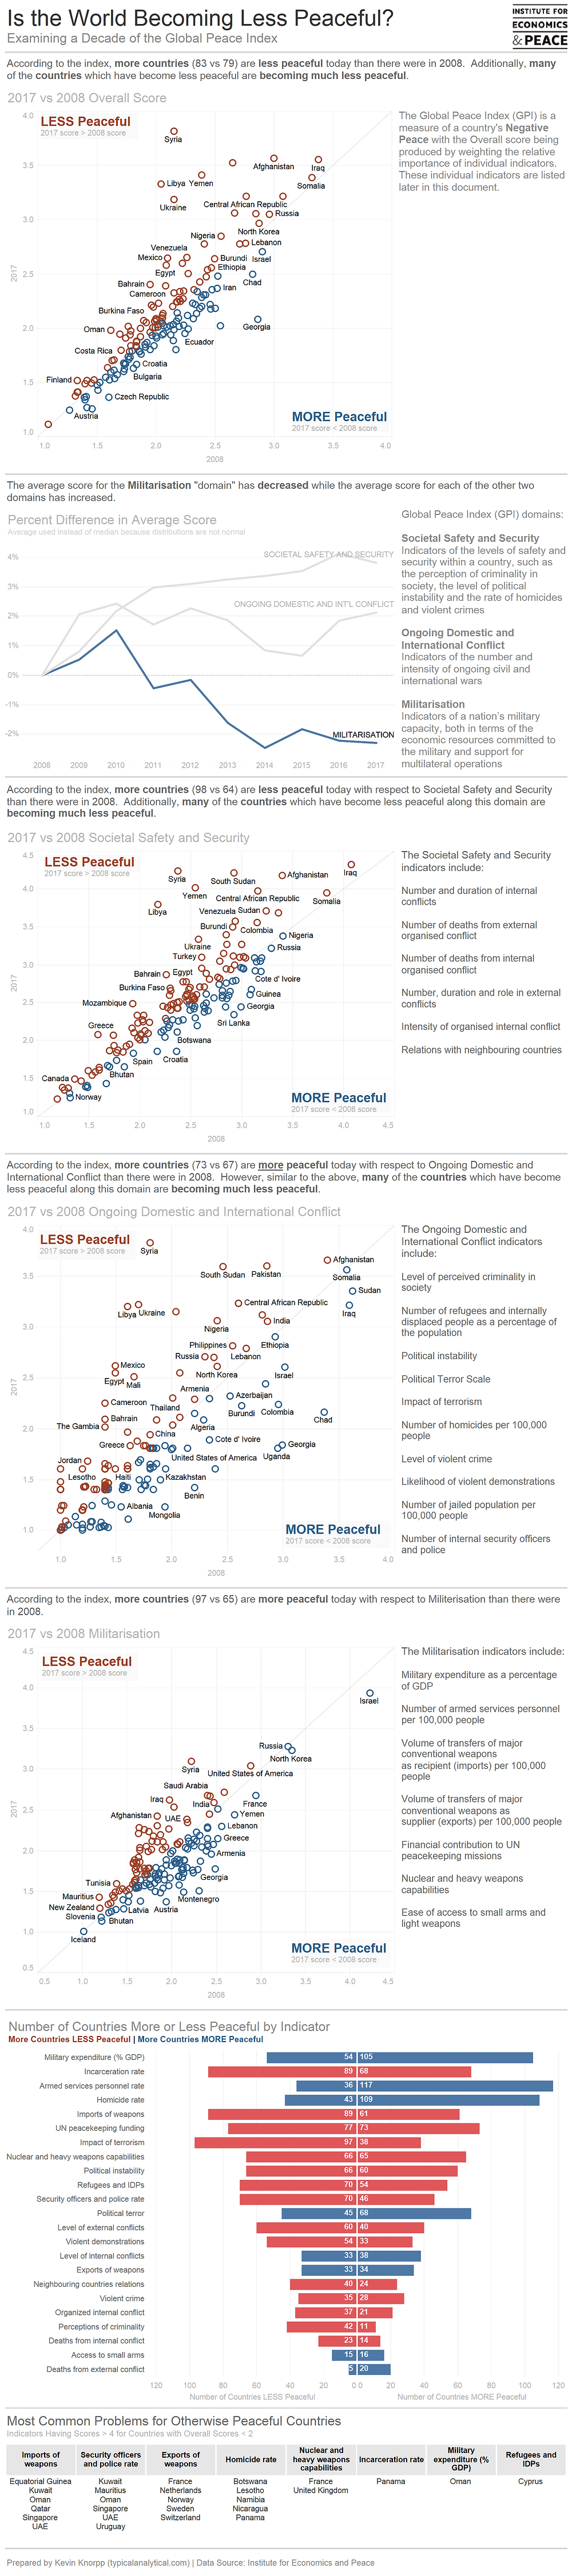 Data for a Cause visualization byKevin M. Knorpp